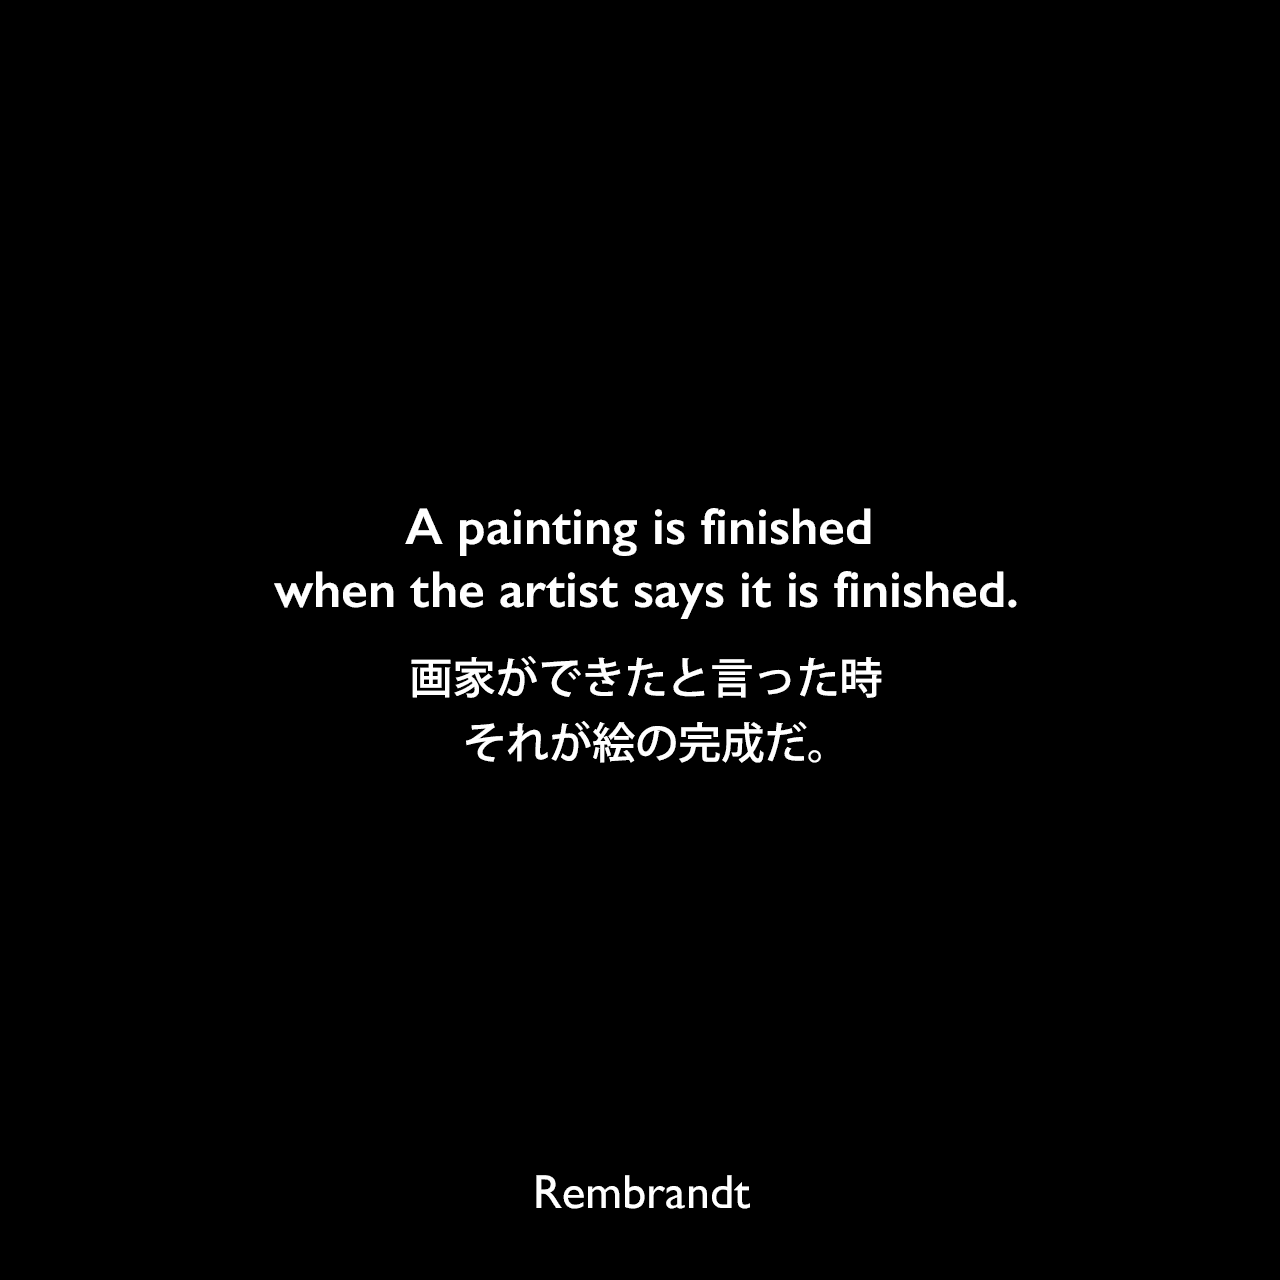 A painting is finished when the artist says it is finished.画家ができたと言った時、それが絵の完成だ。Rembrandt